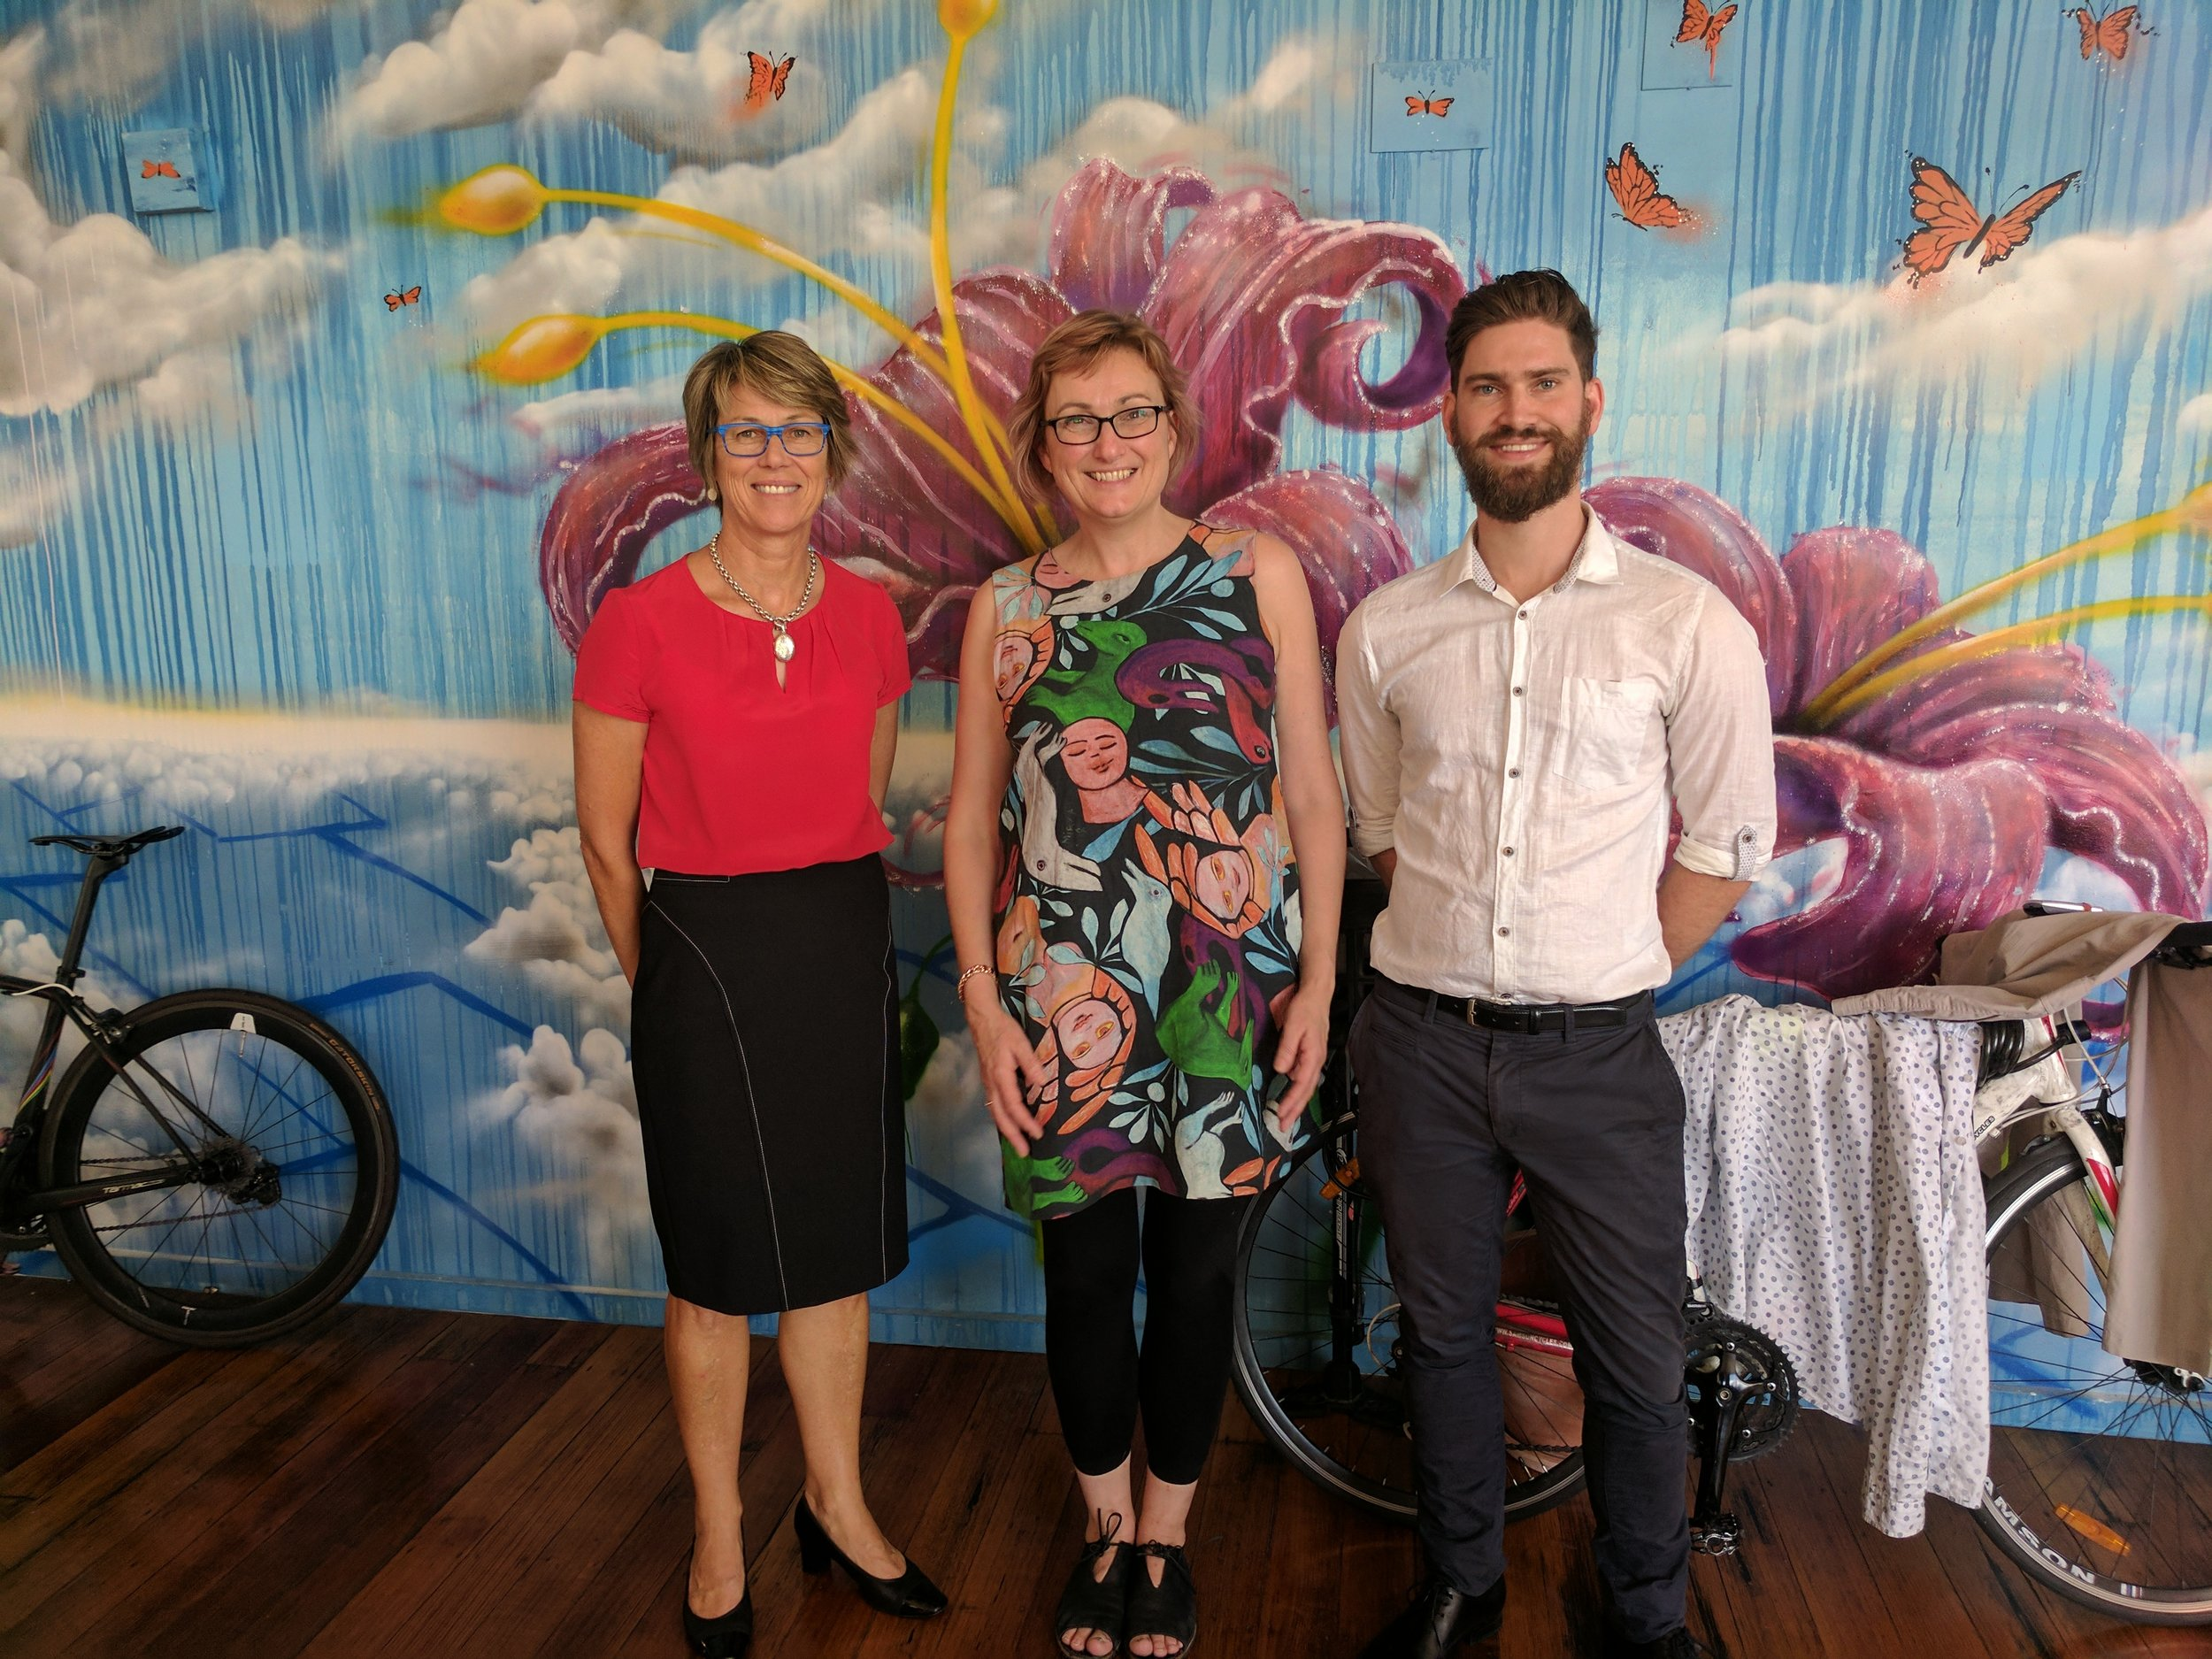 Marion Wands (left), Janet Hopkins (middle) and Alex Stretton (right) catching up in the Melbourne ConNetica office